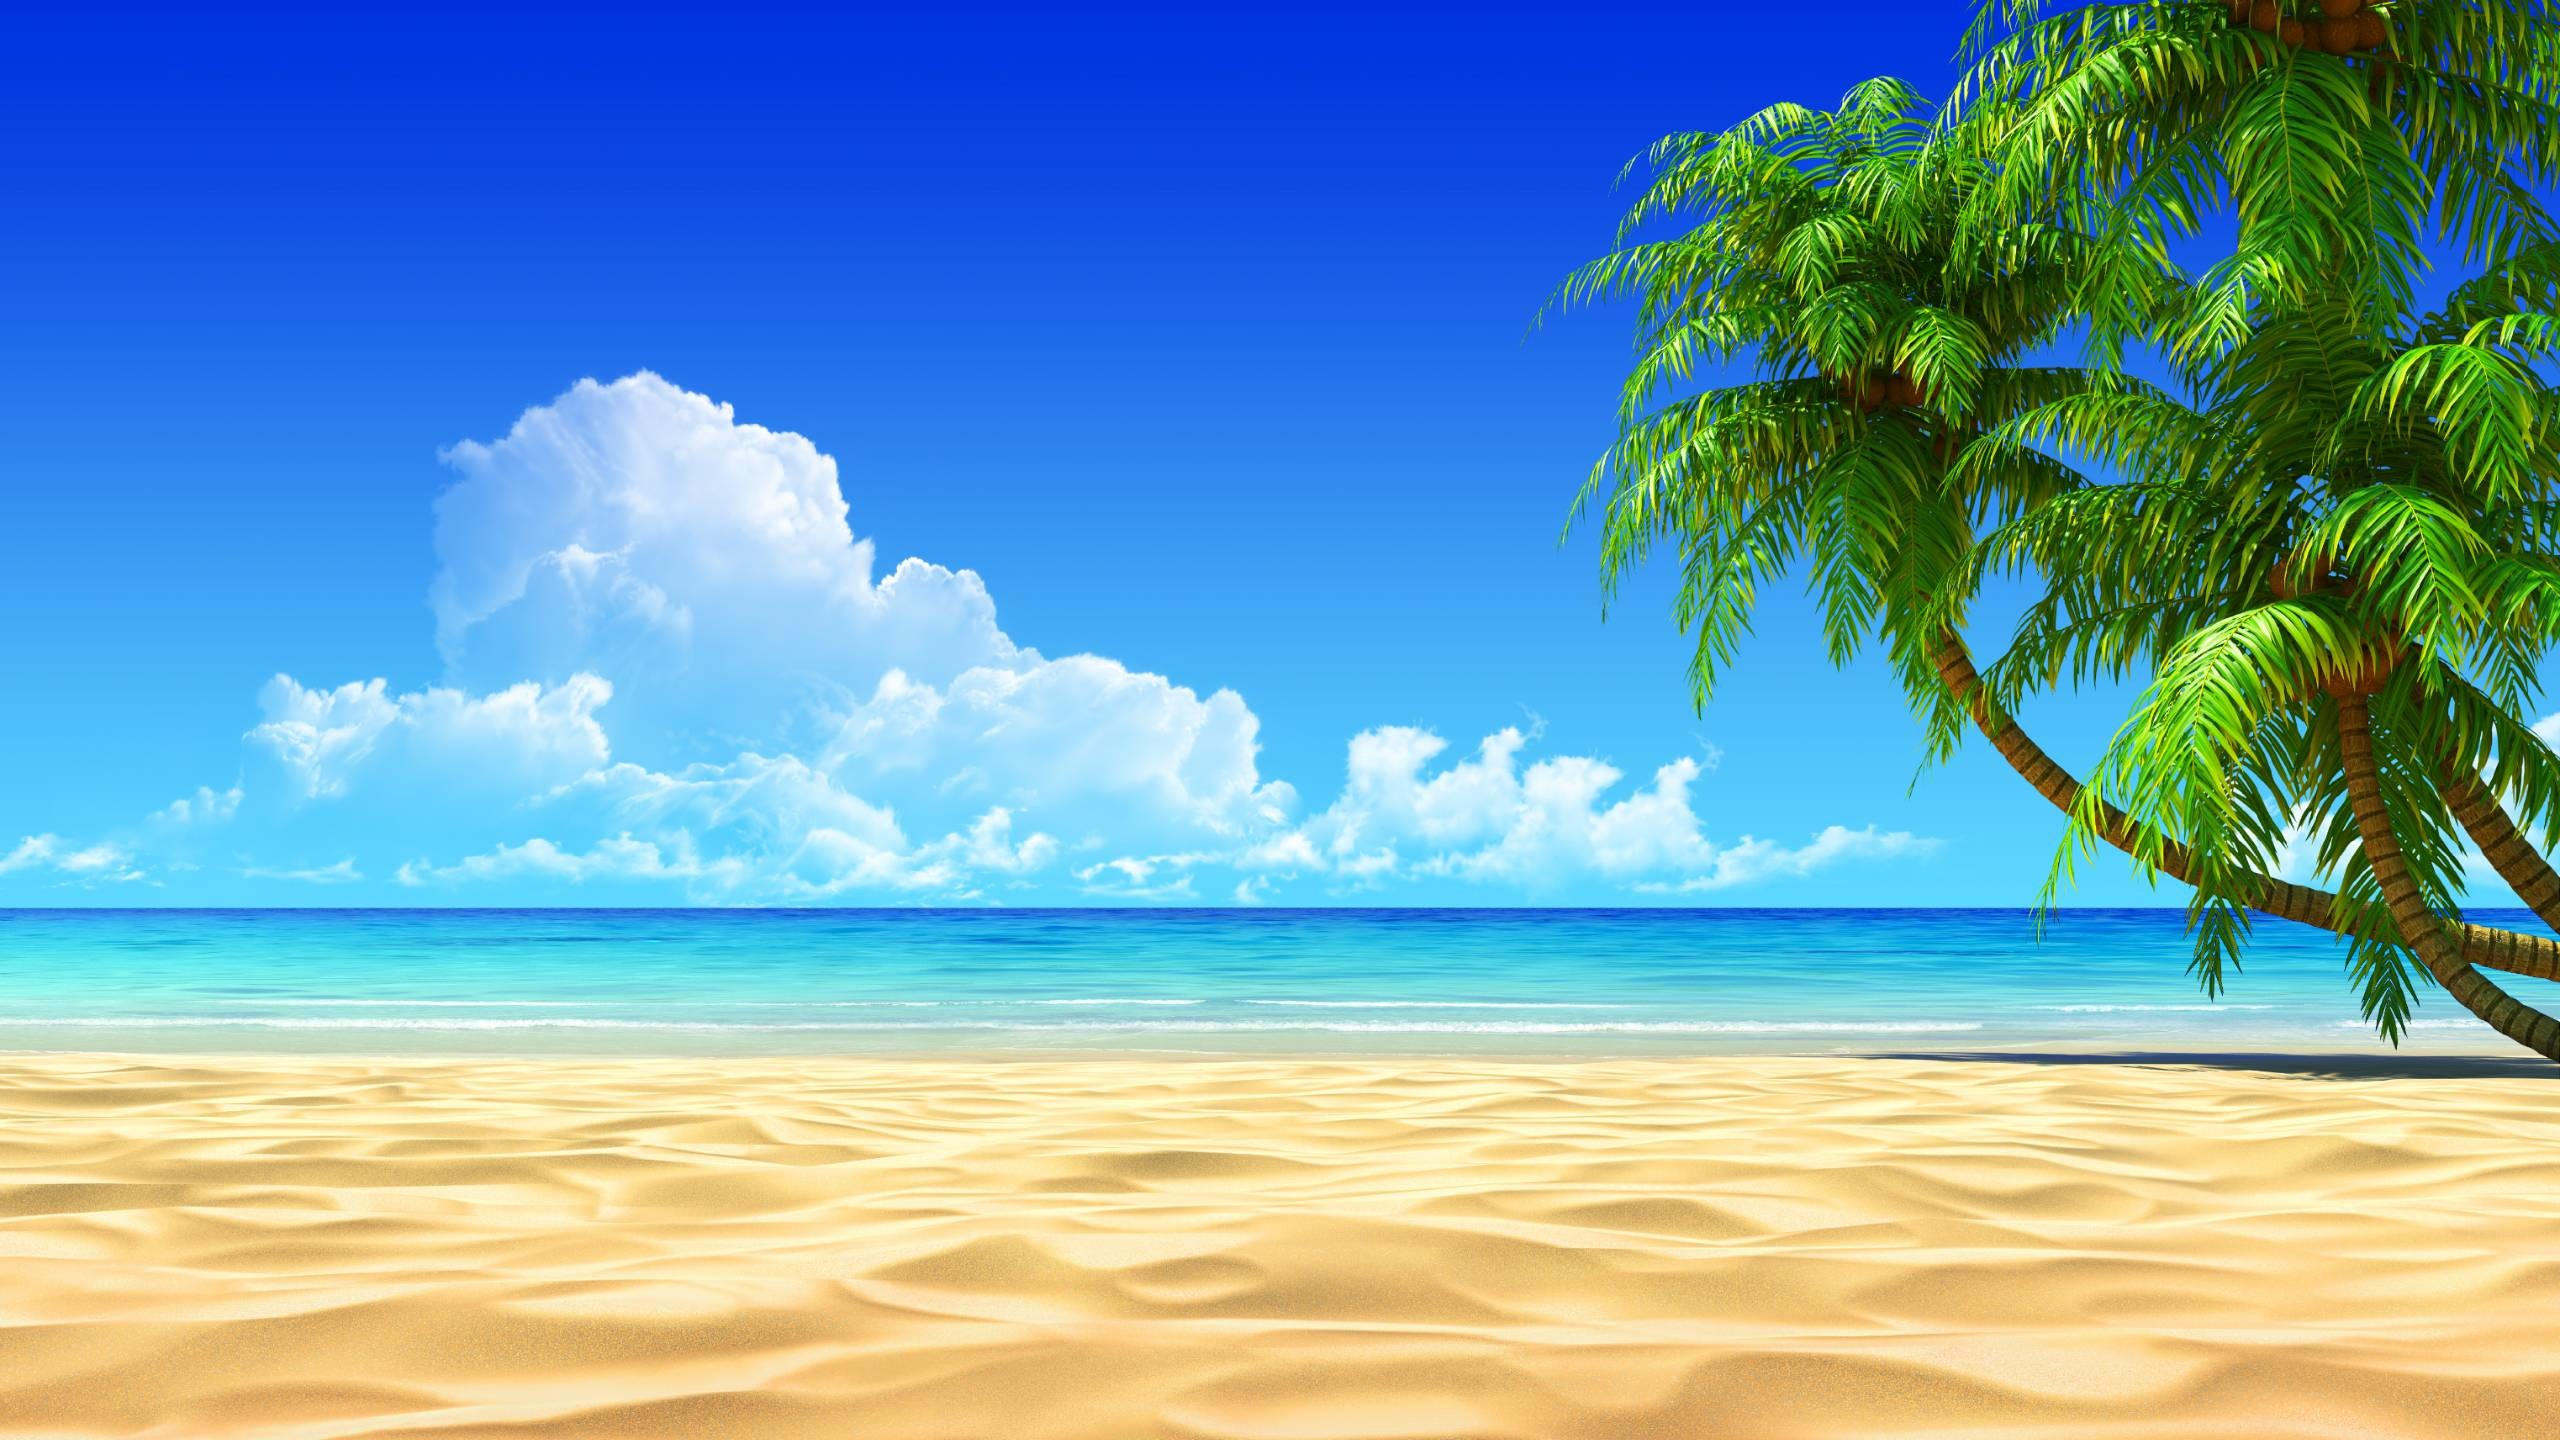 Tropical Beach Wallpaper Wallpapers HD, Wallpaper, Tropical Beach .